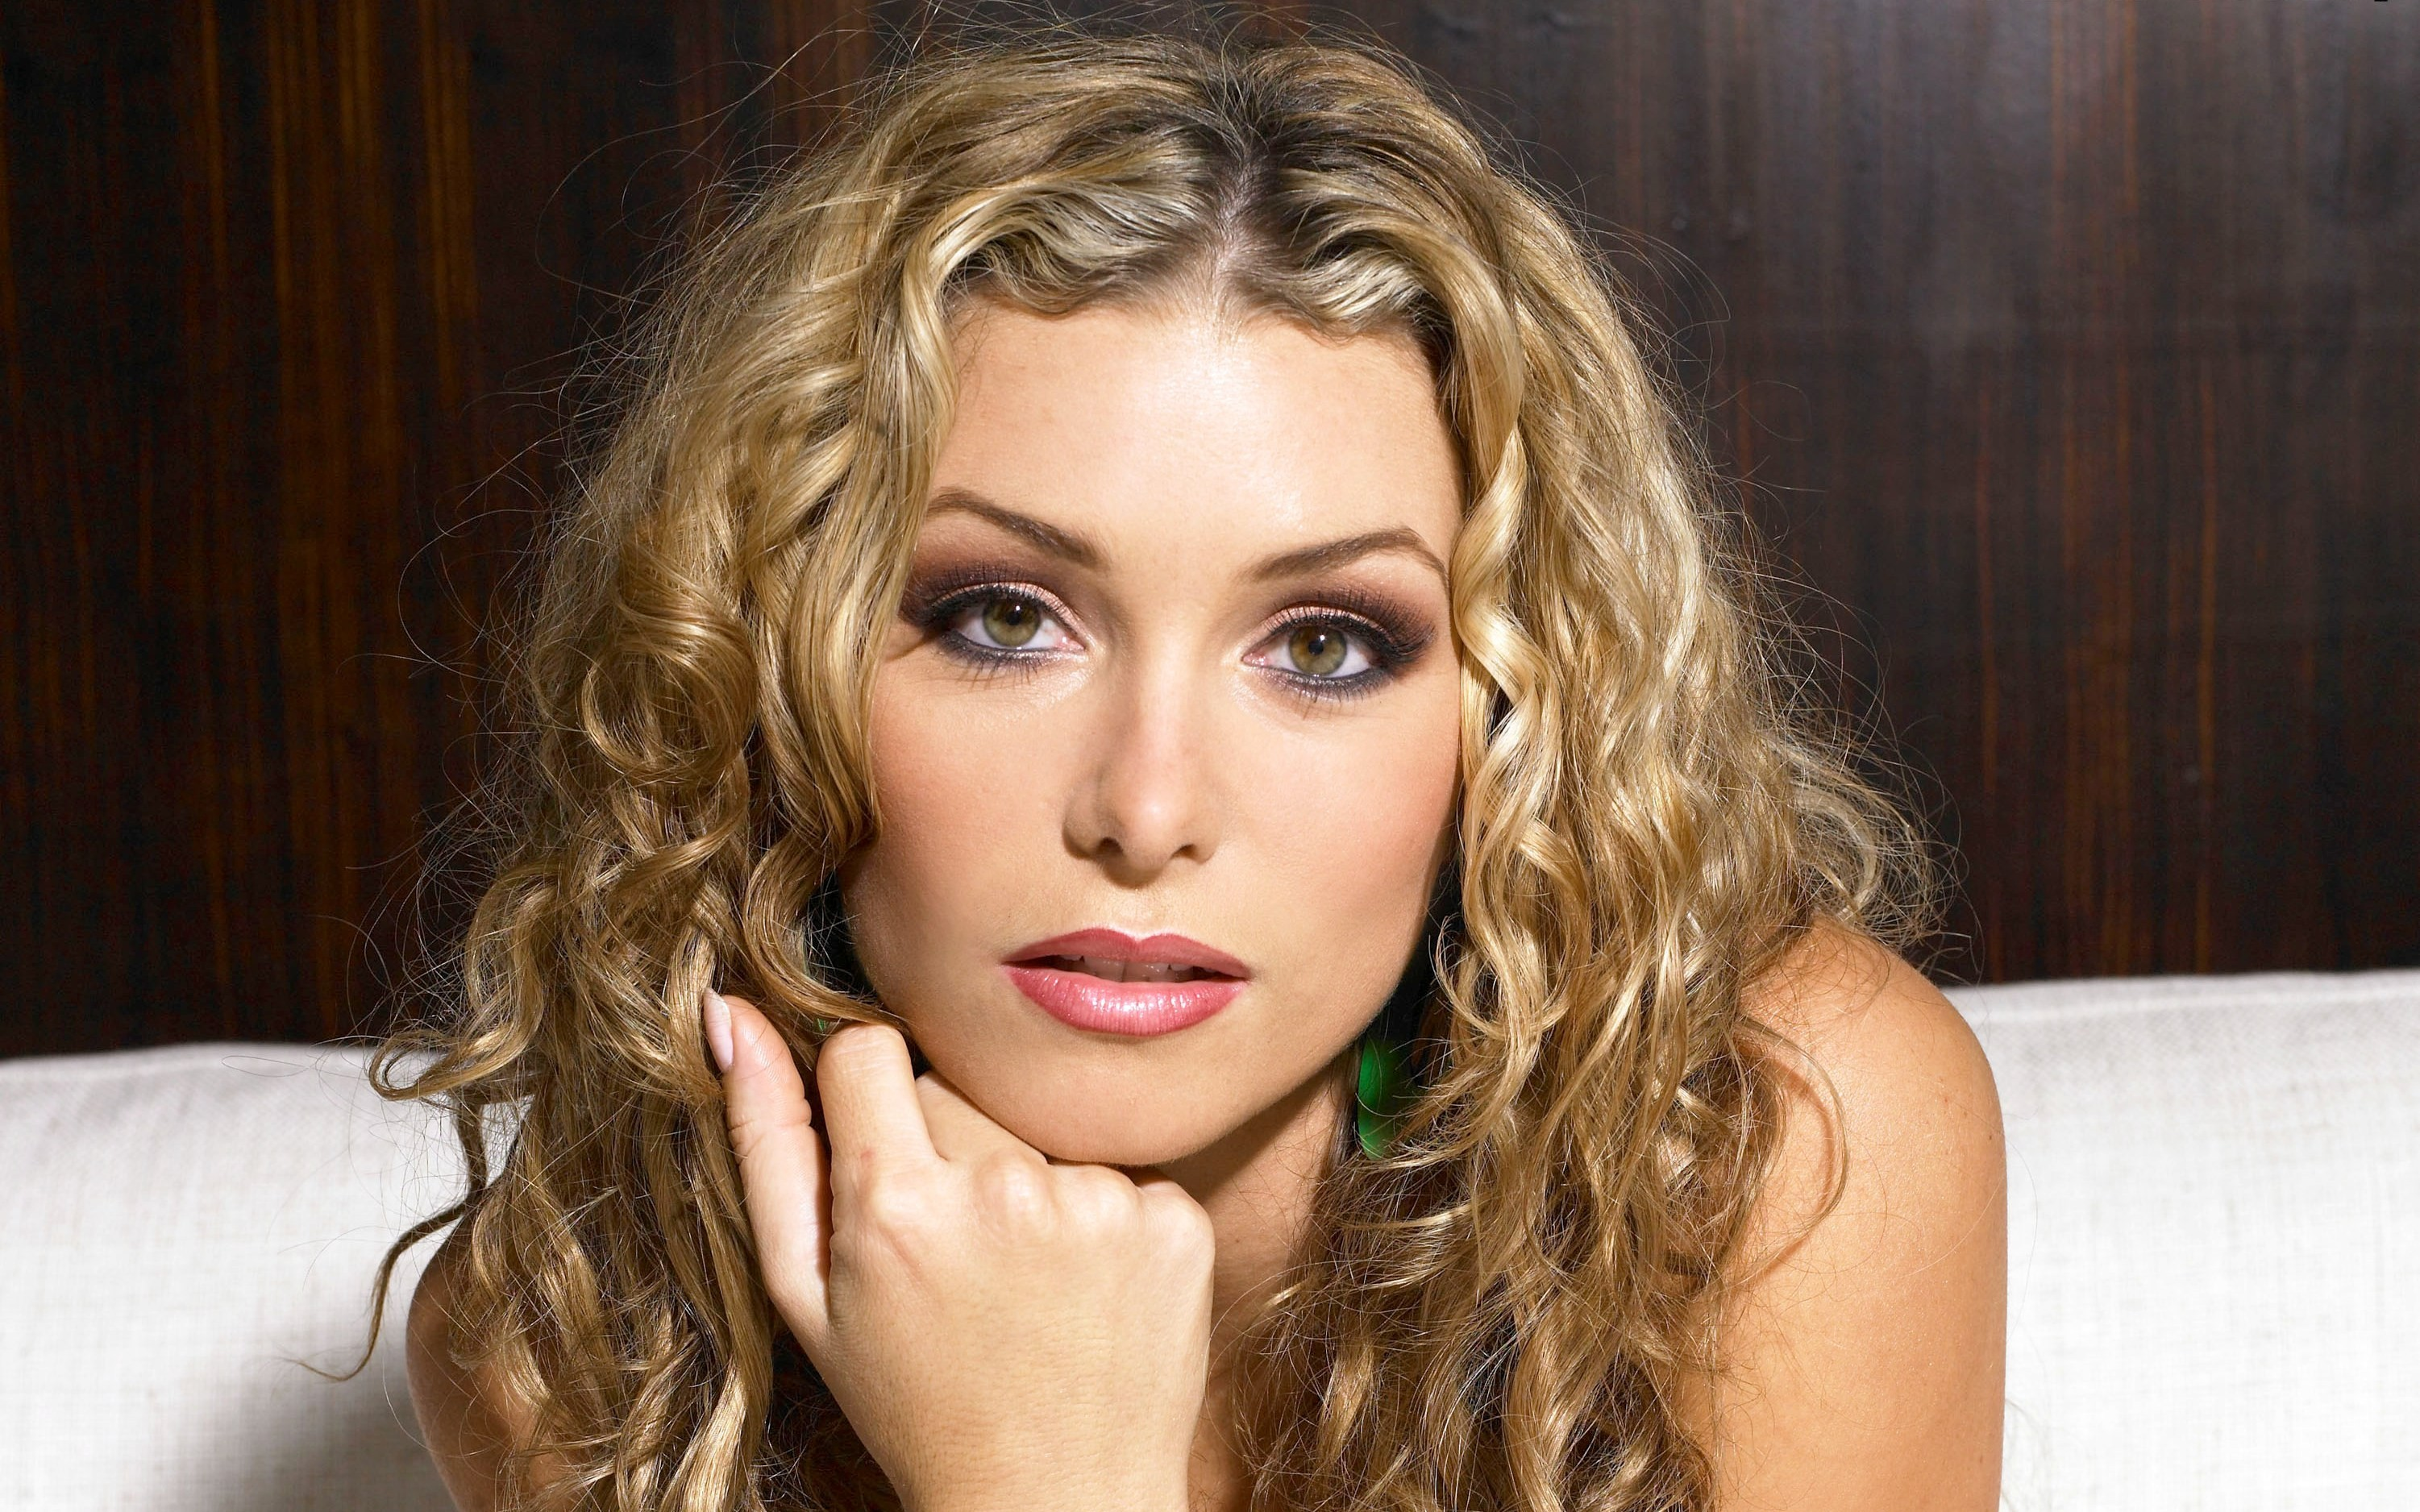 woman Heather Vandeven faces HD Wallpaper